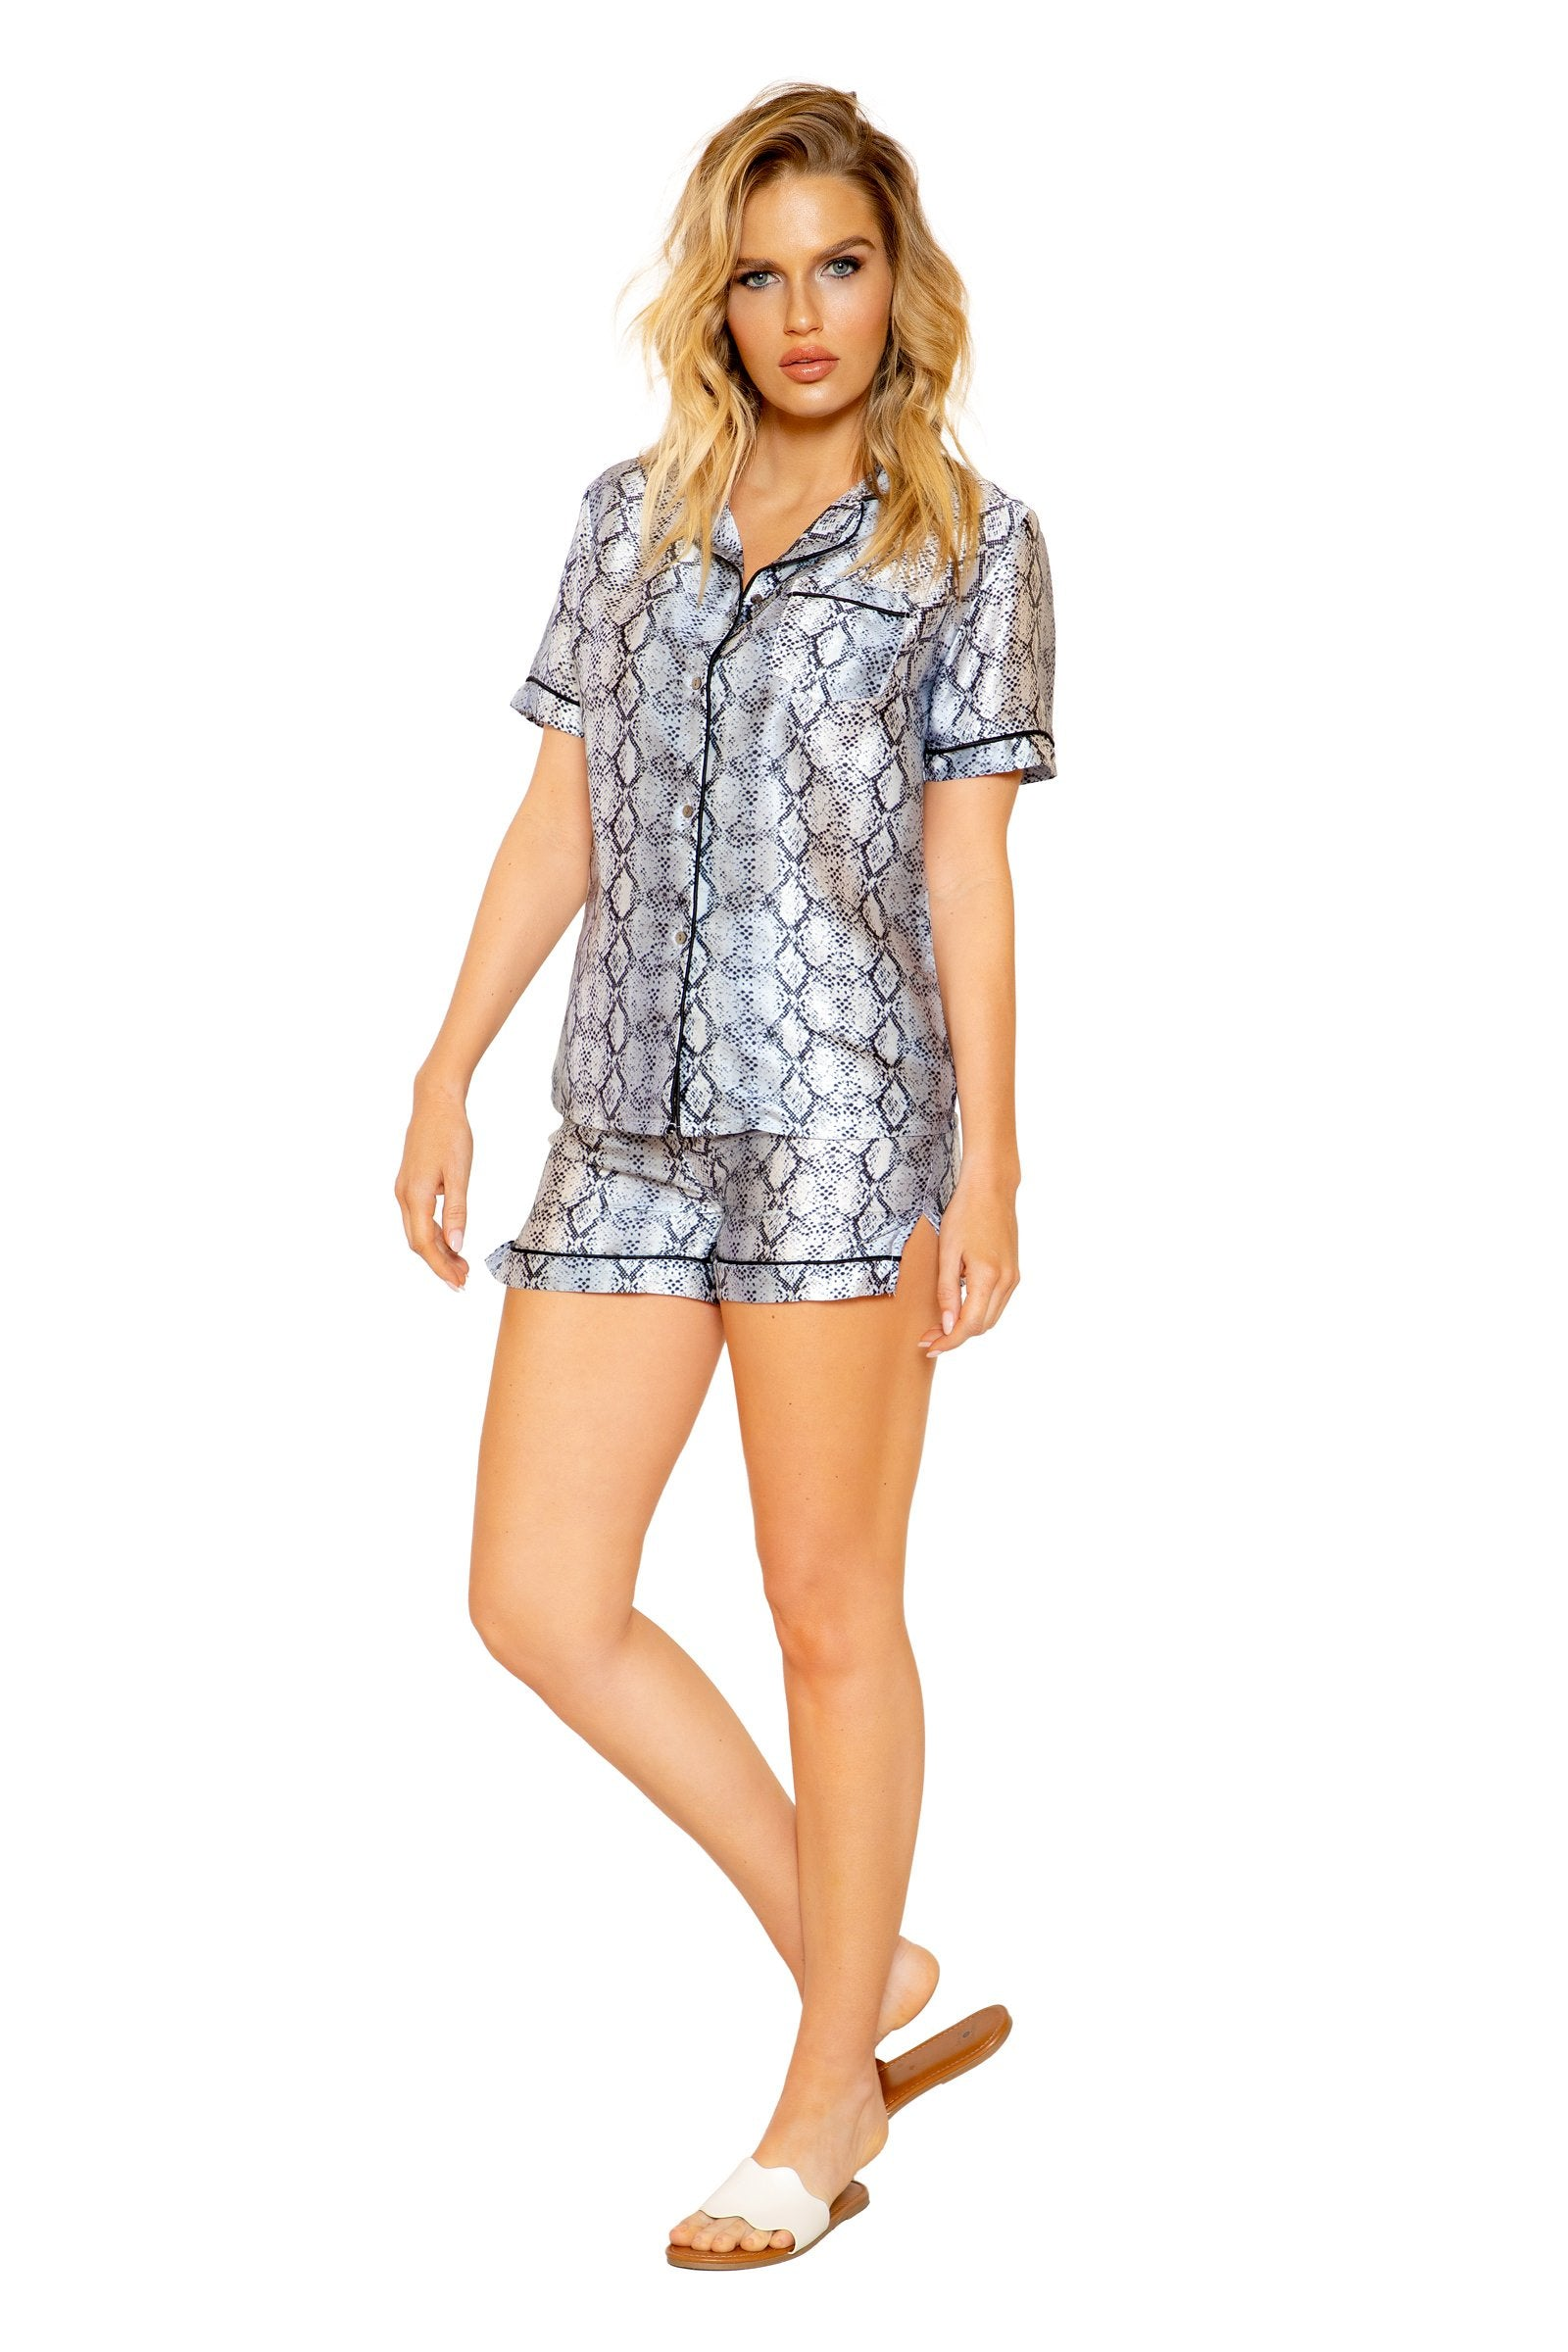 LI317 - 2pc Snakeskin Lounge Pajama Set